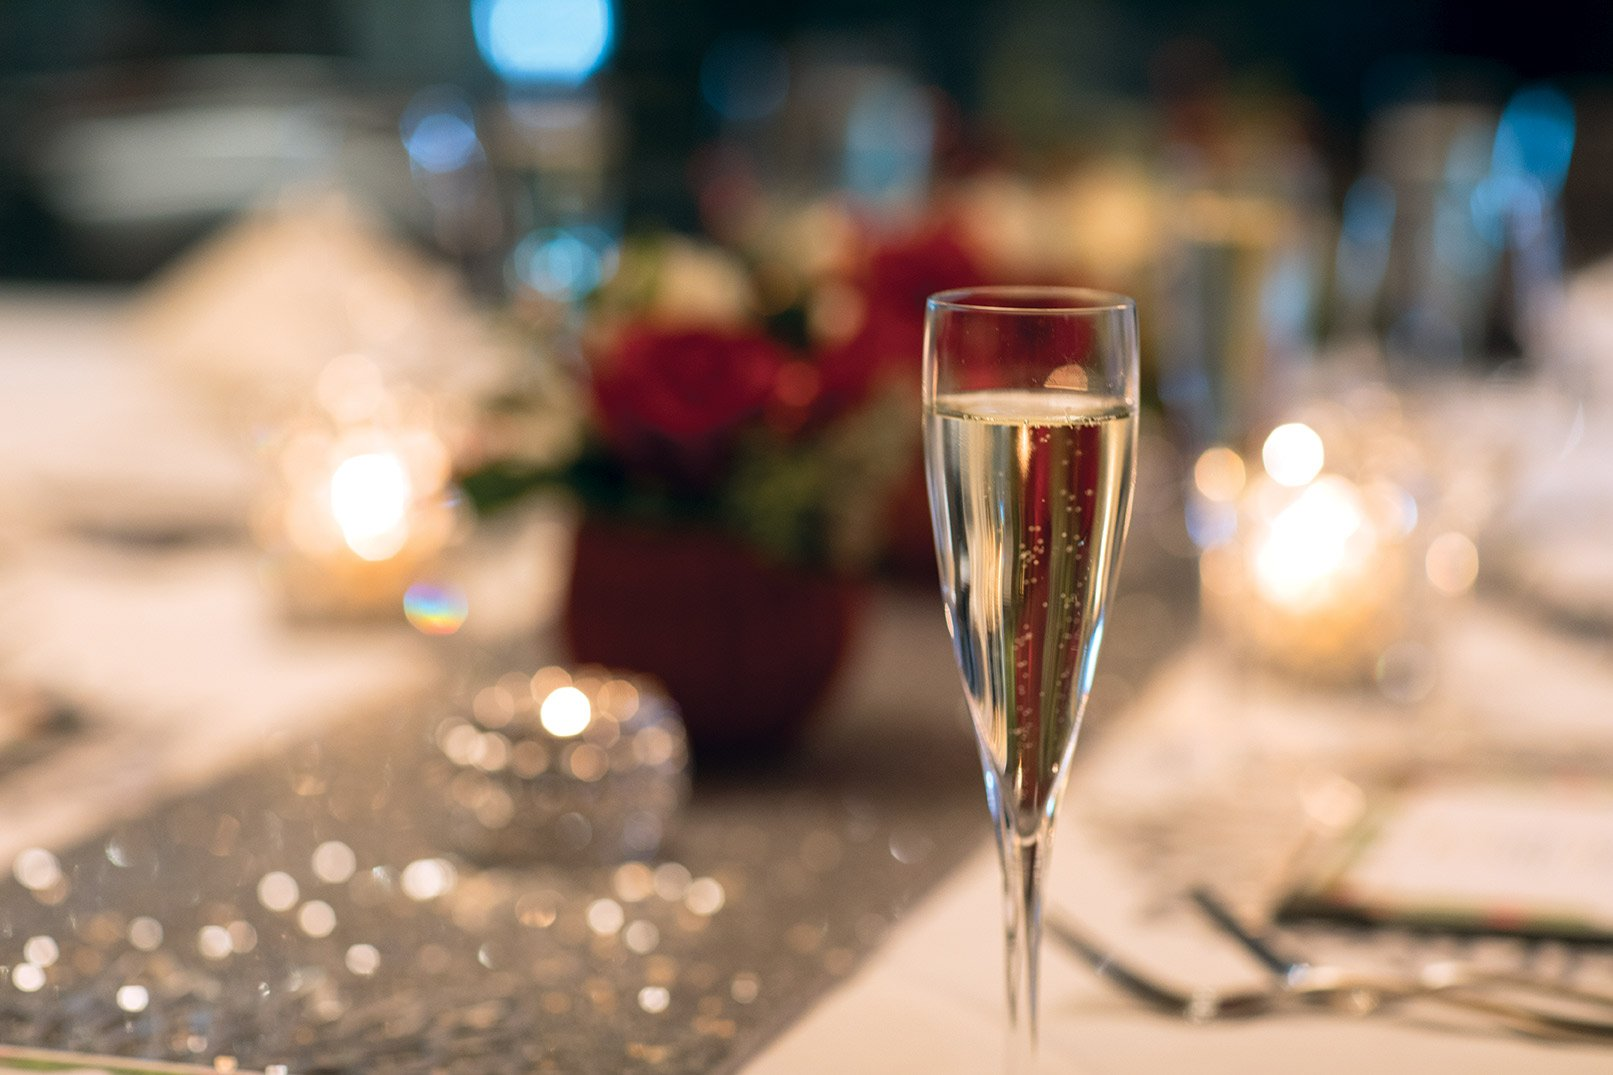 champagne flute in front of private dining holiday table